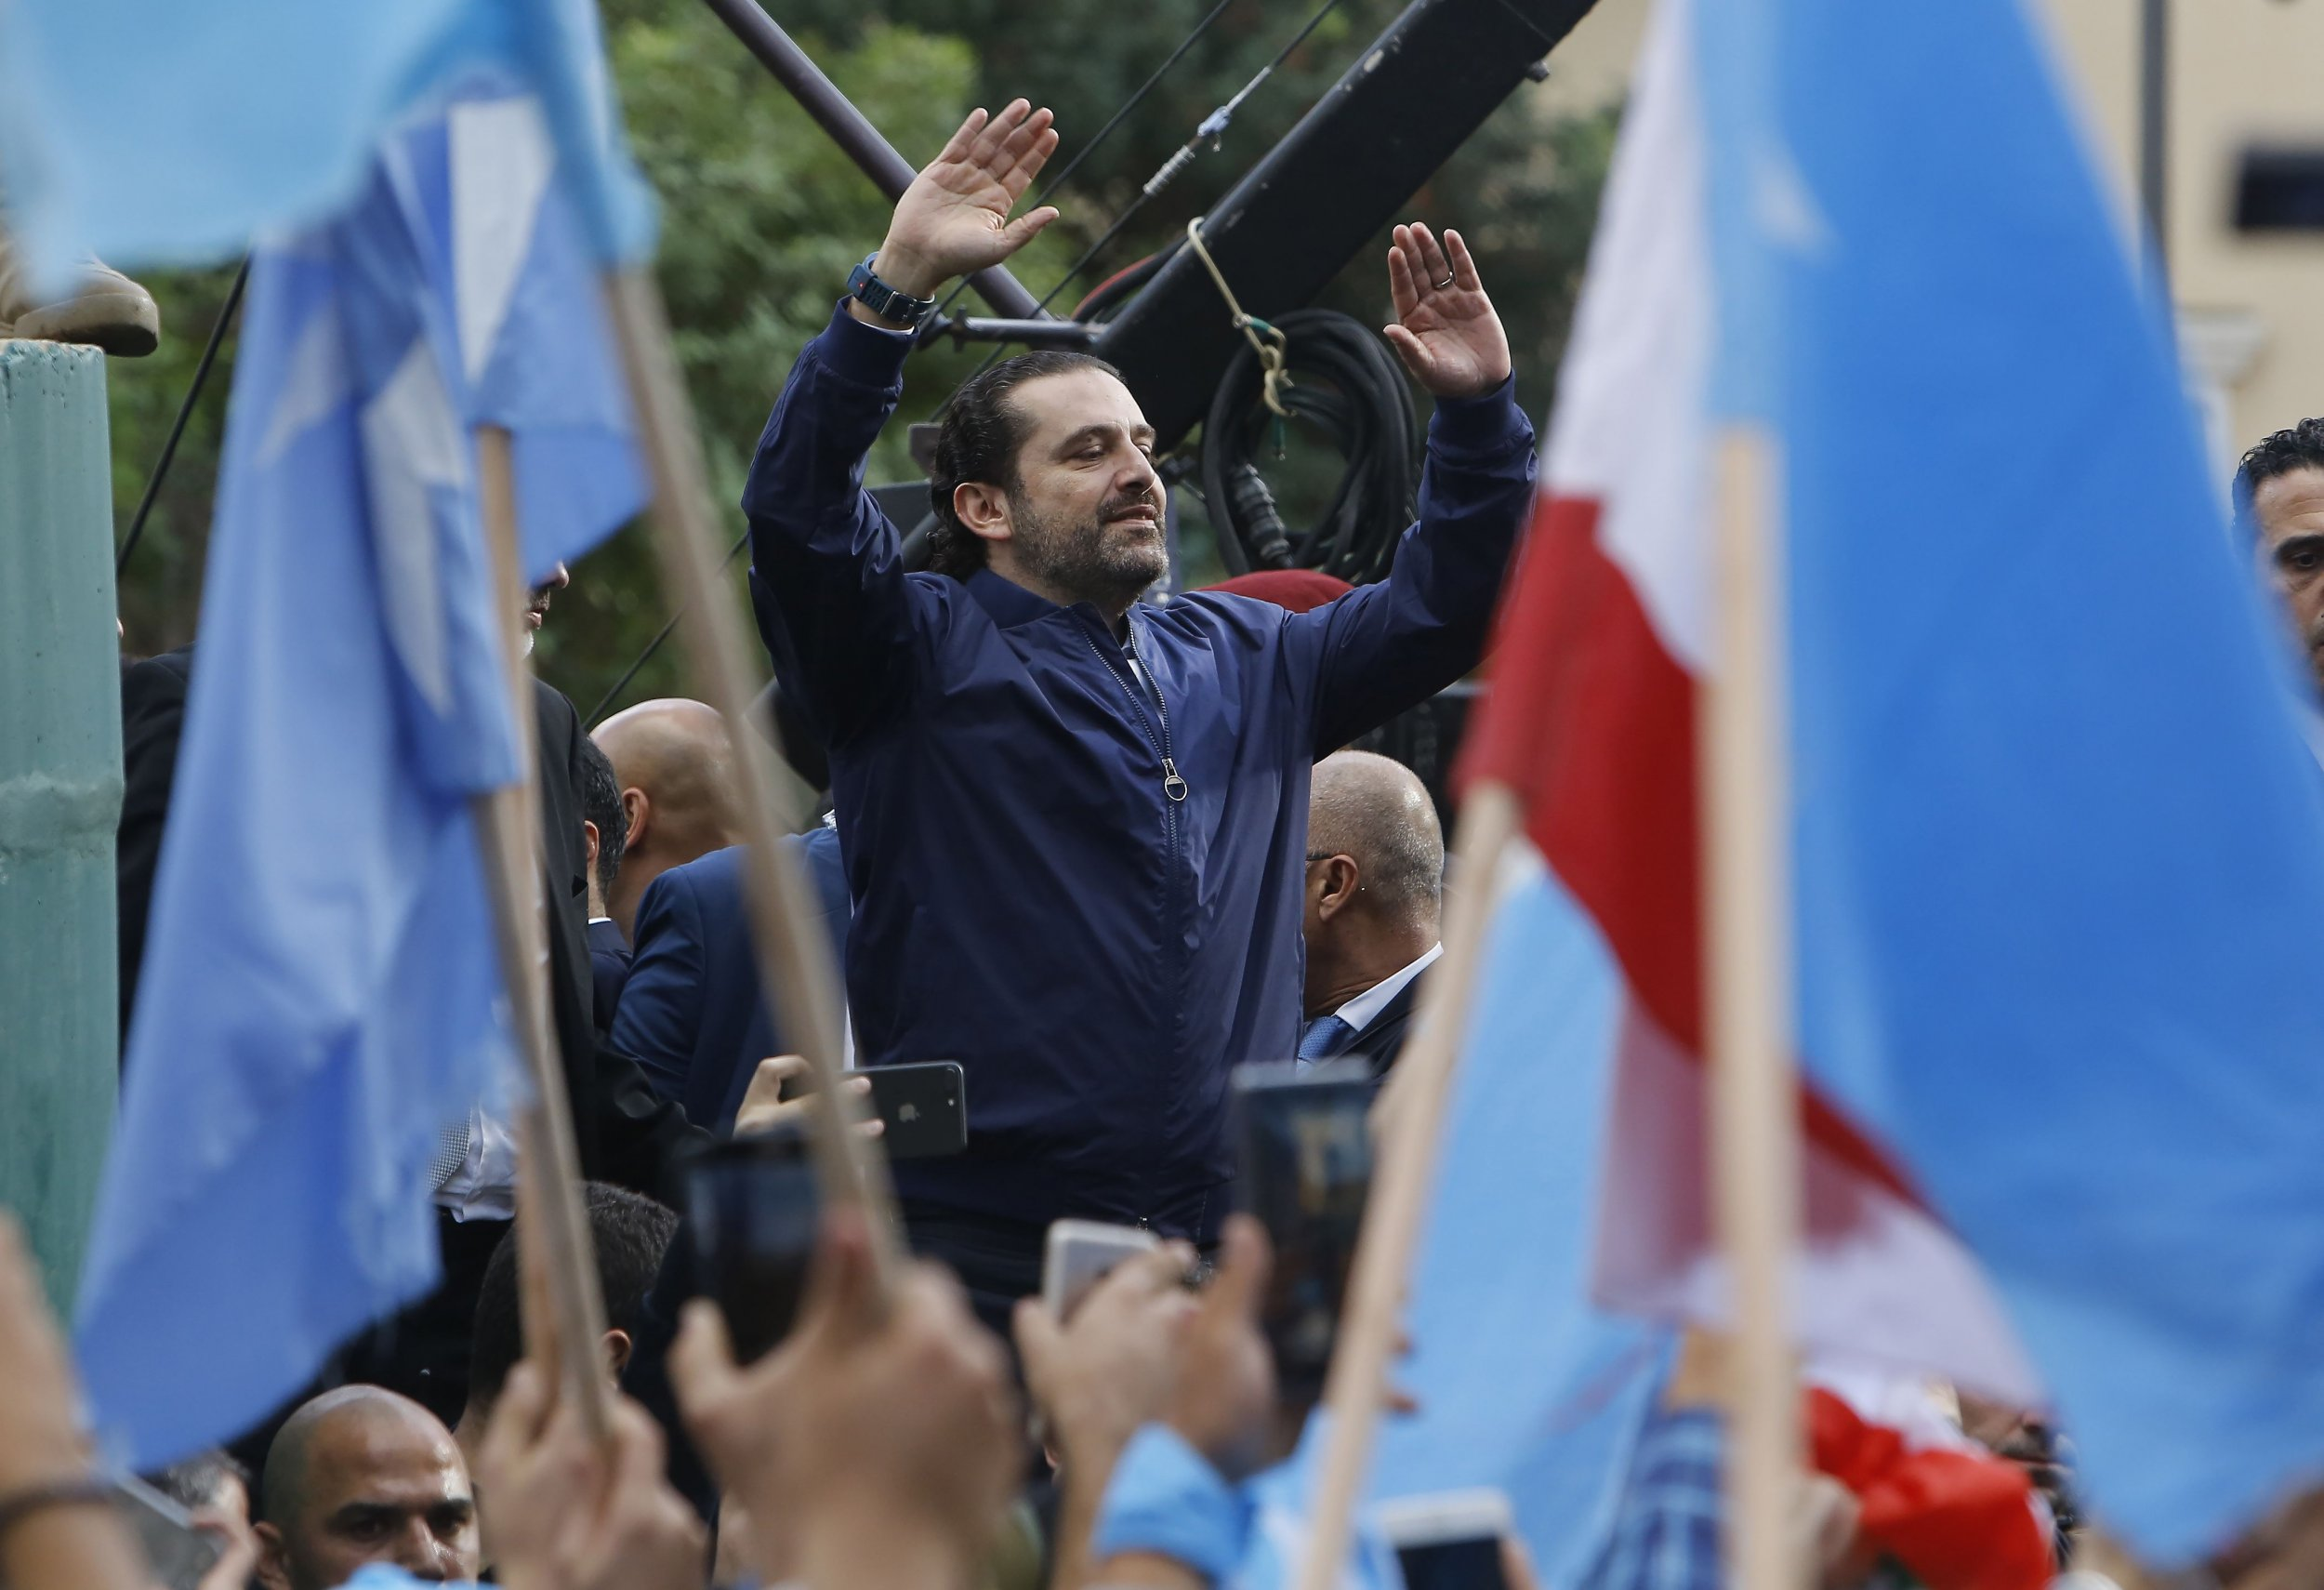 Why Lebanon's Prime Minister Saad Hariri Disappeared Into The Arms